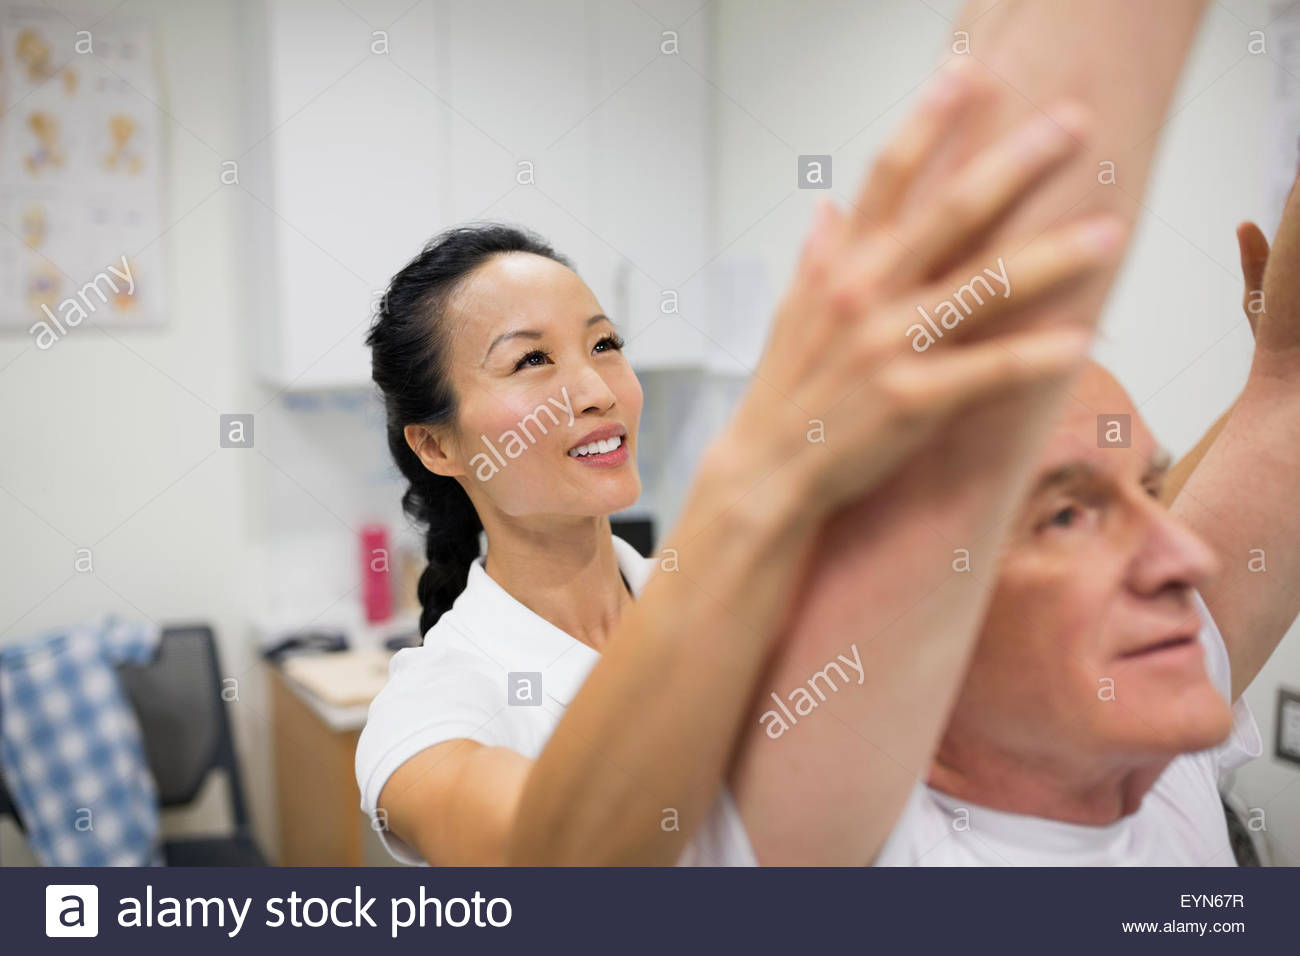 Physical therapist guiding patient with arms raised - Stock Image